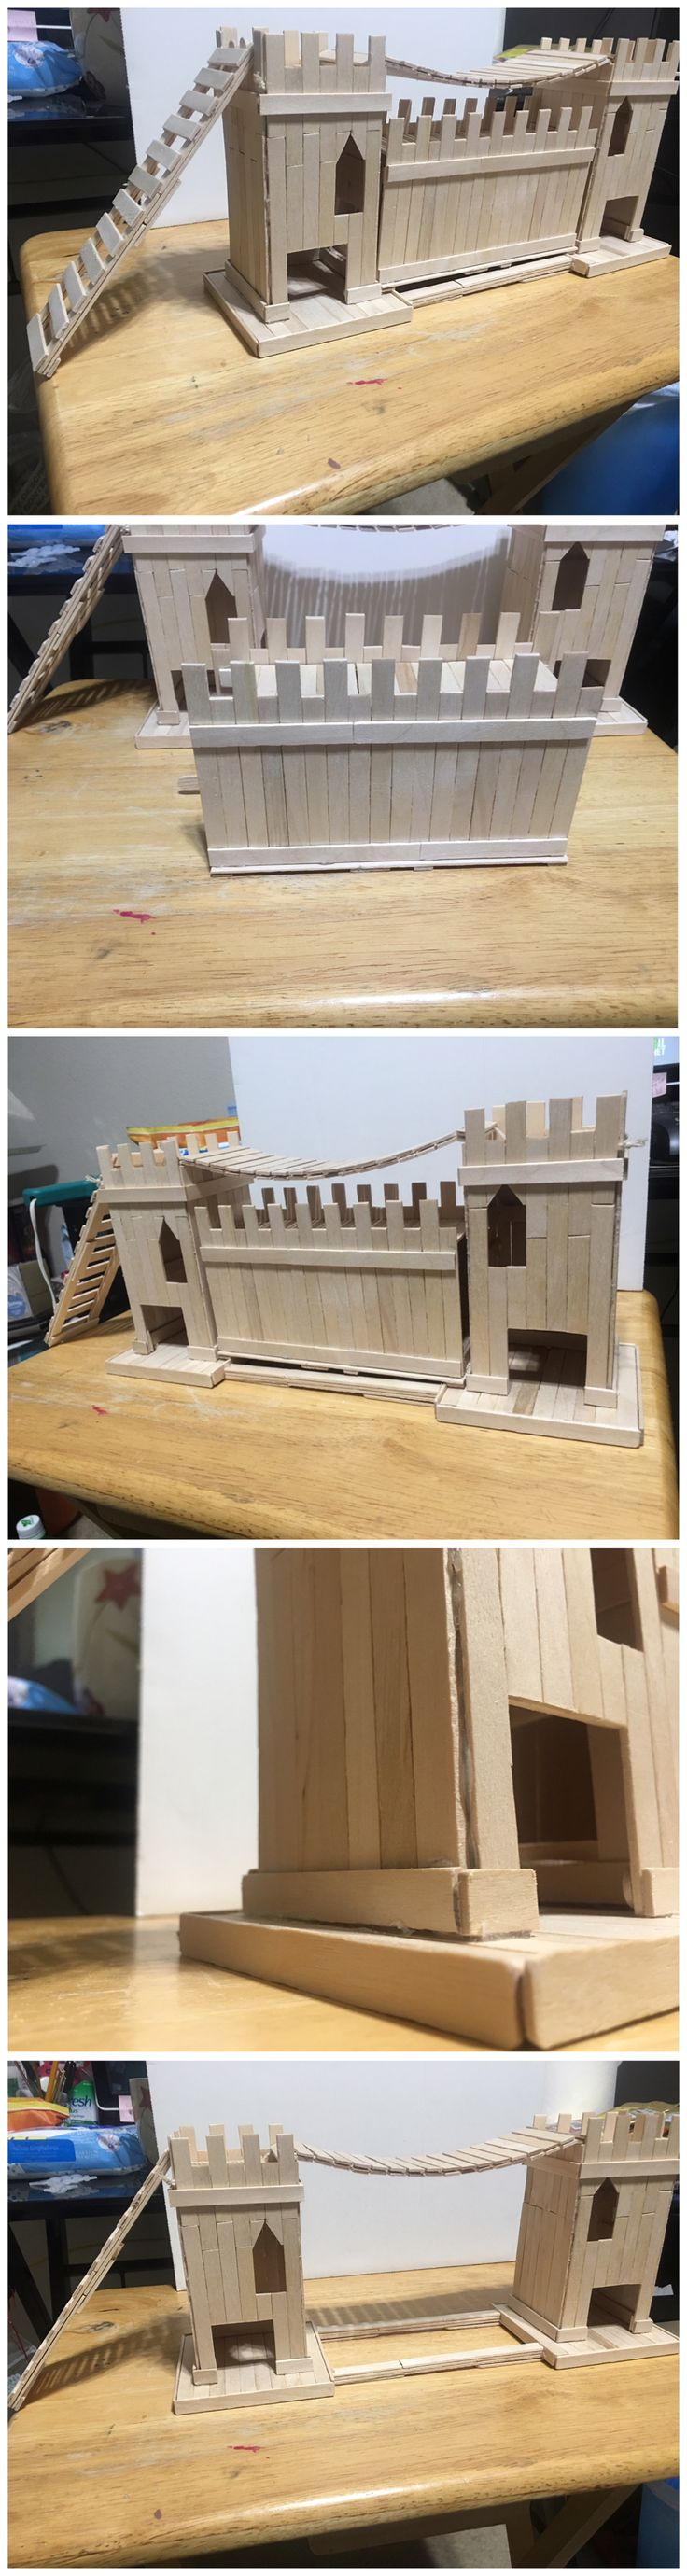 Homemade diy hamster castle made out of popsicle sticks. Has a removable middle for cleaning and bridge with ladder.